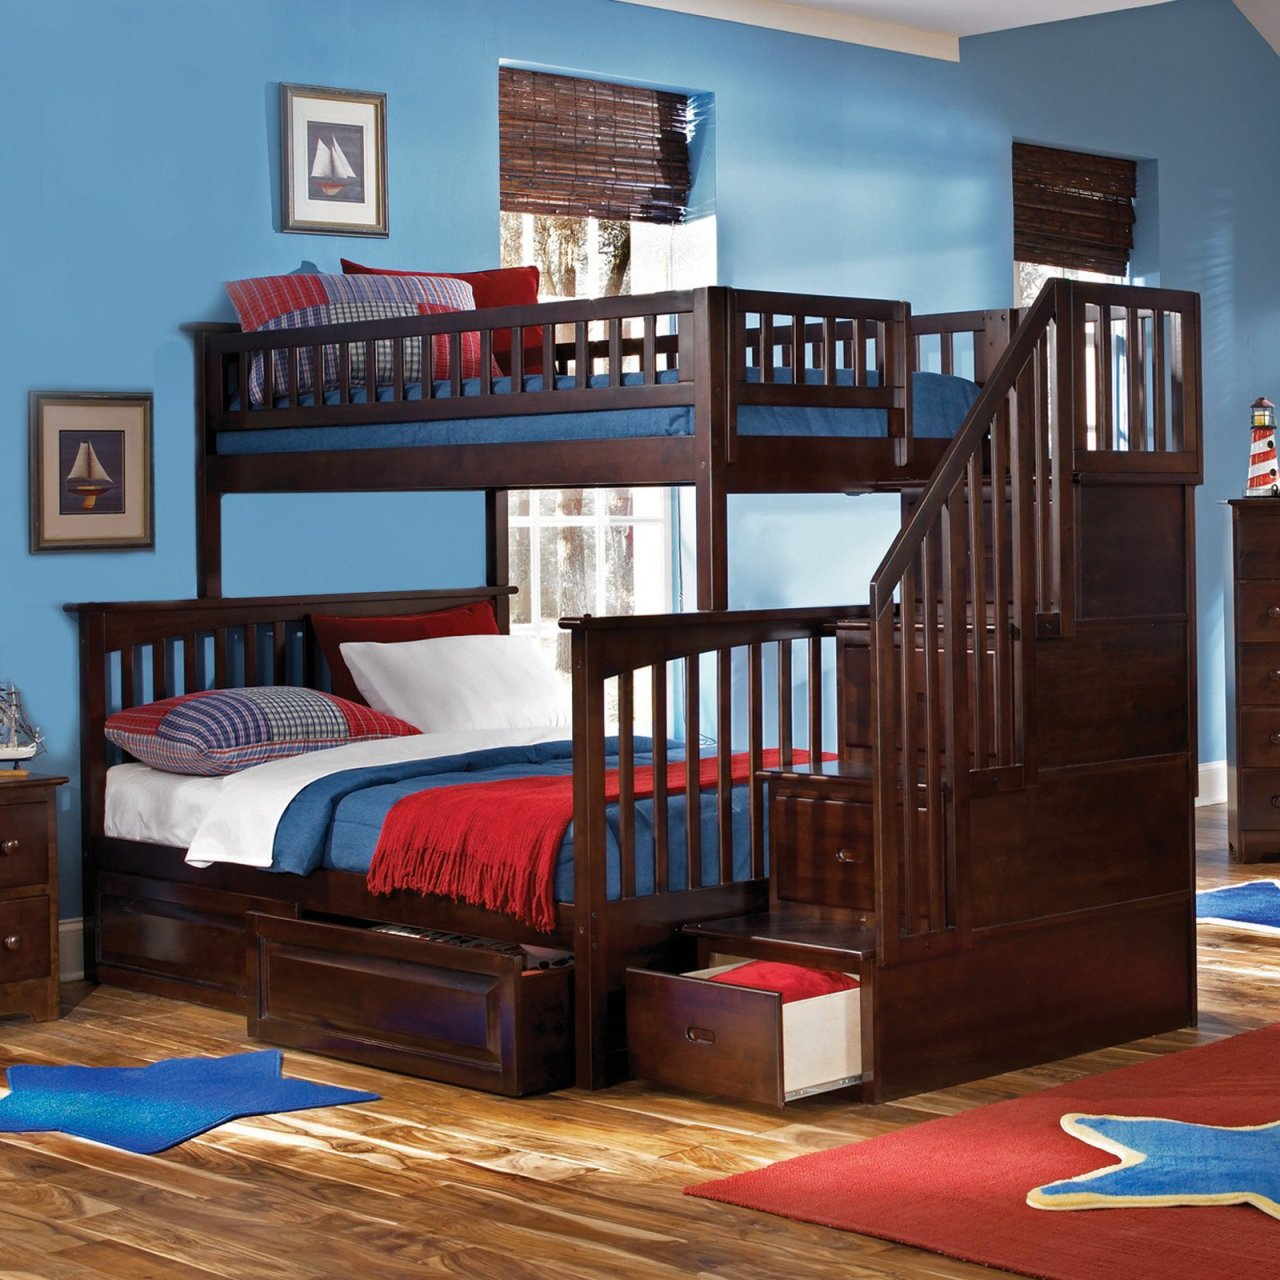 Cool Beds For Boys Awesome Bunk Beds Home Design Inside